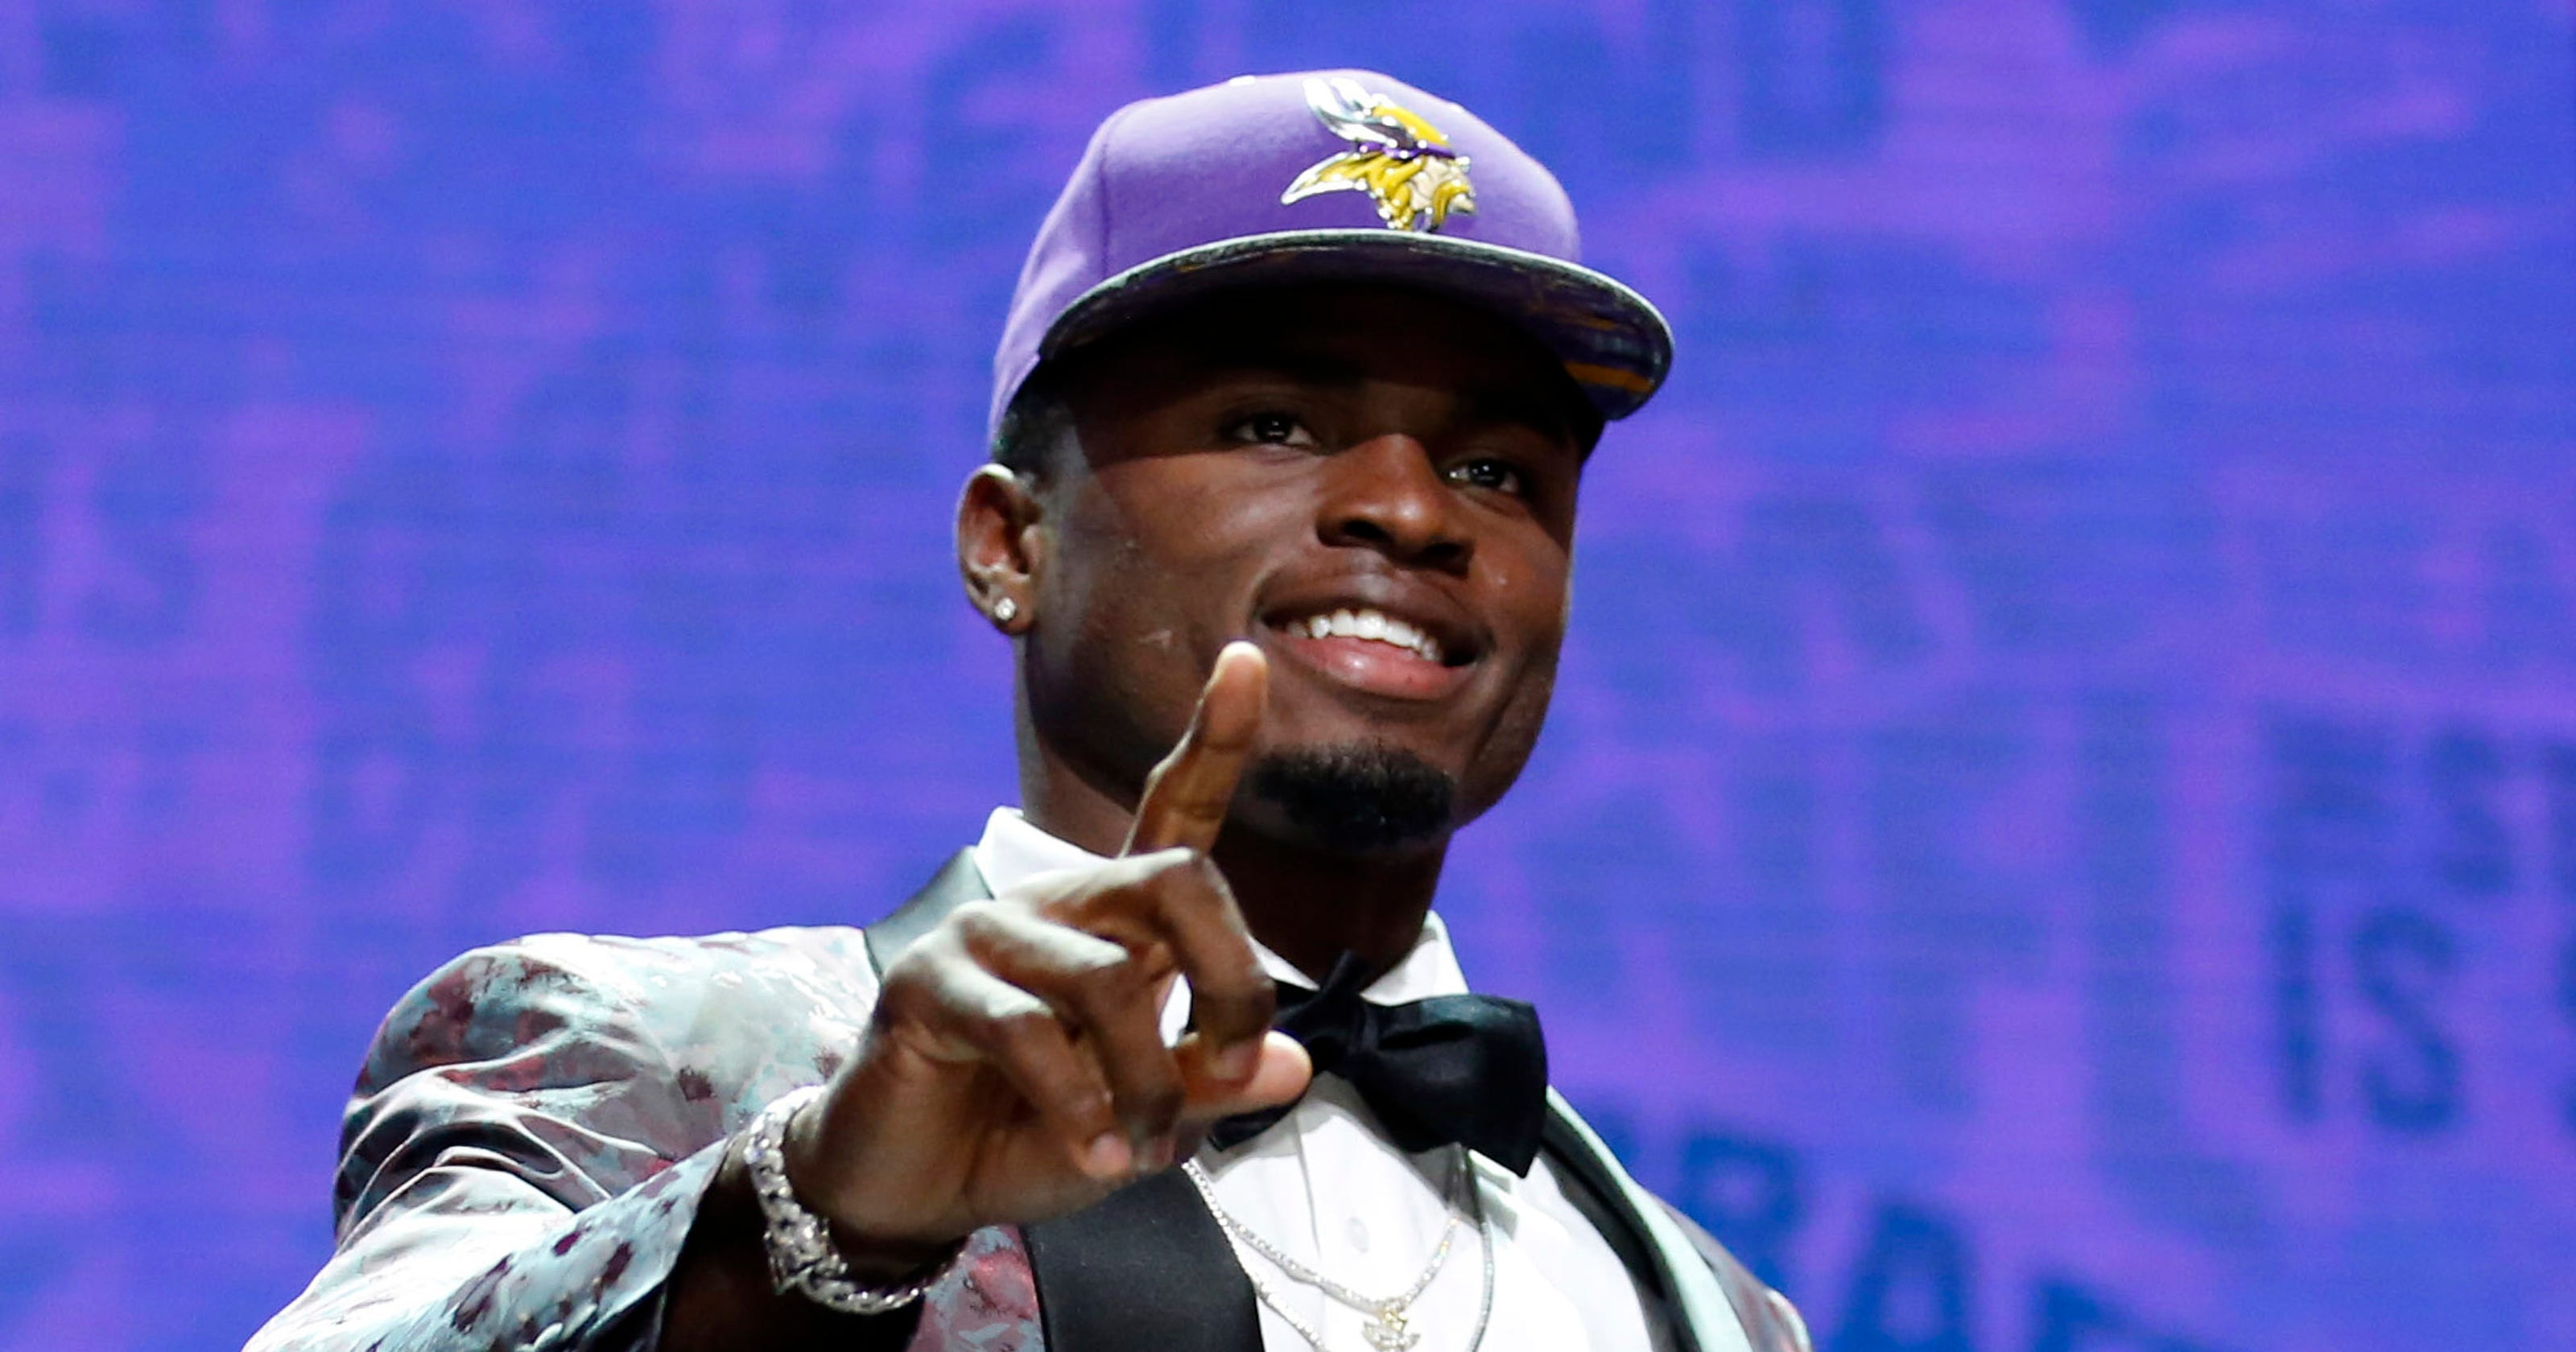 Vikings rookie Laquon Treadwell faces backlash for wearing Raiders hat be3cb03e5